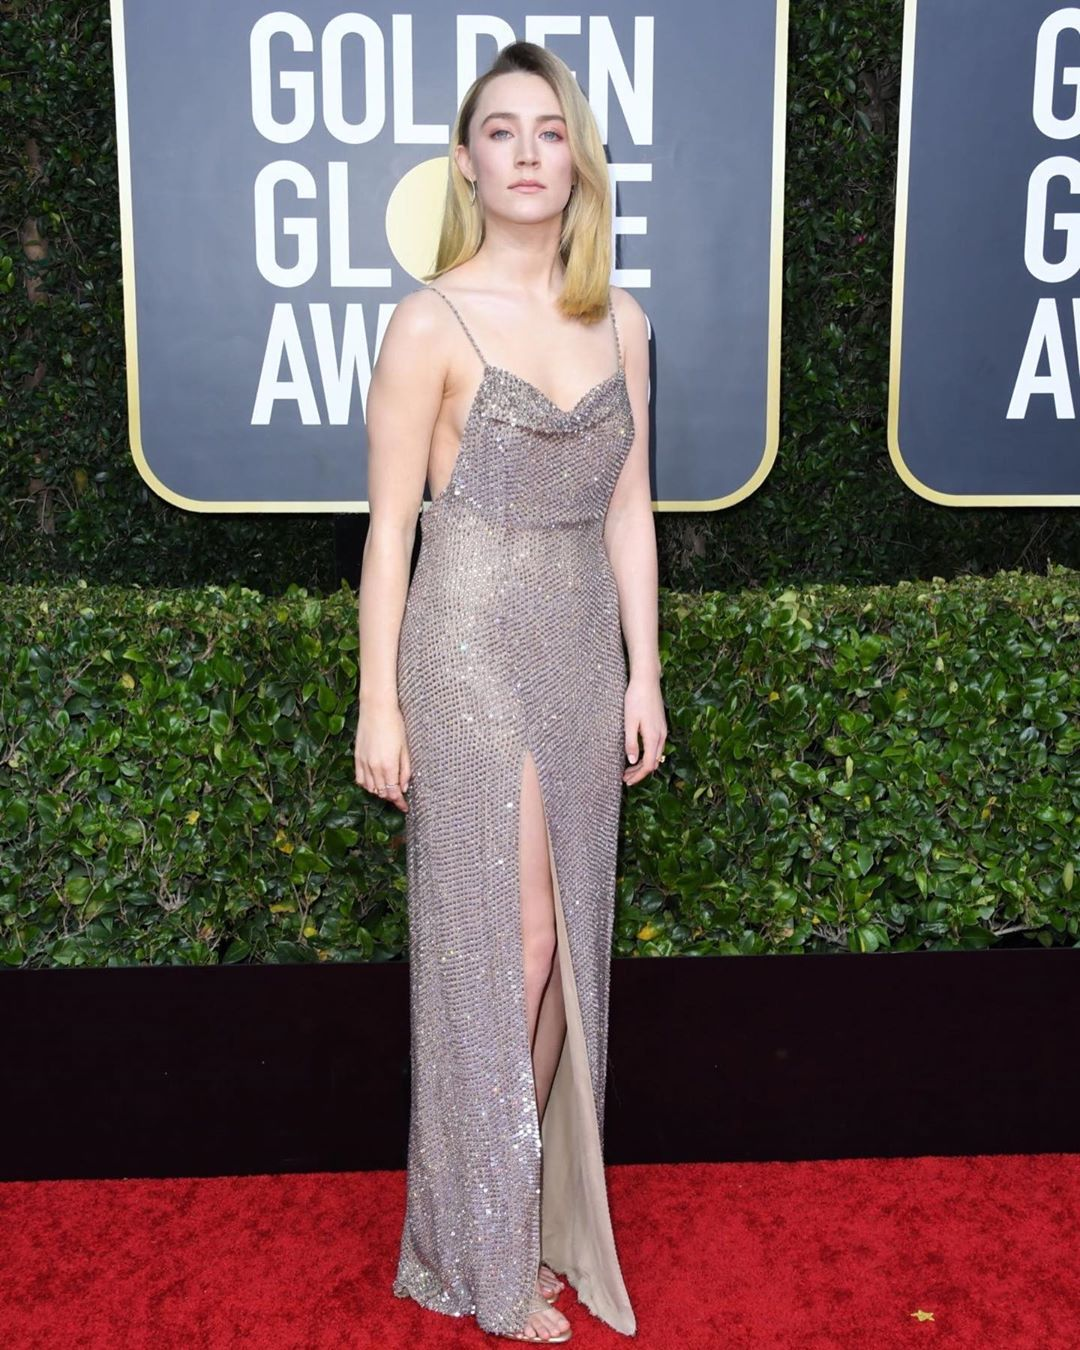 saoirse-ronan-celine-golden-globes-2020-red-carpet